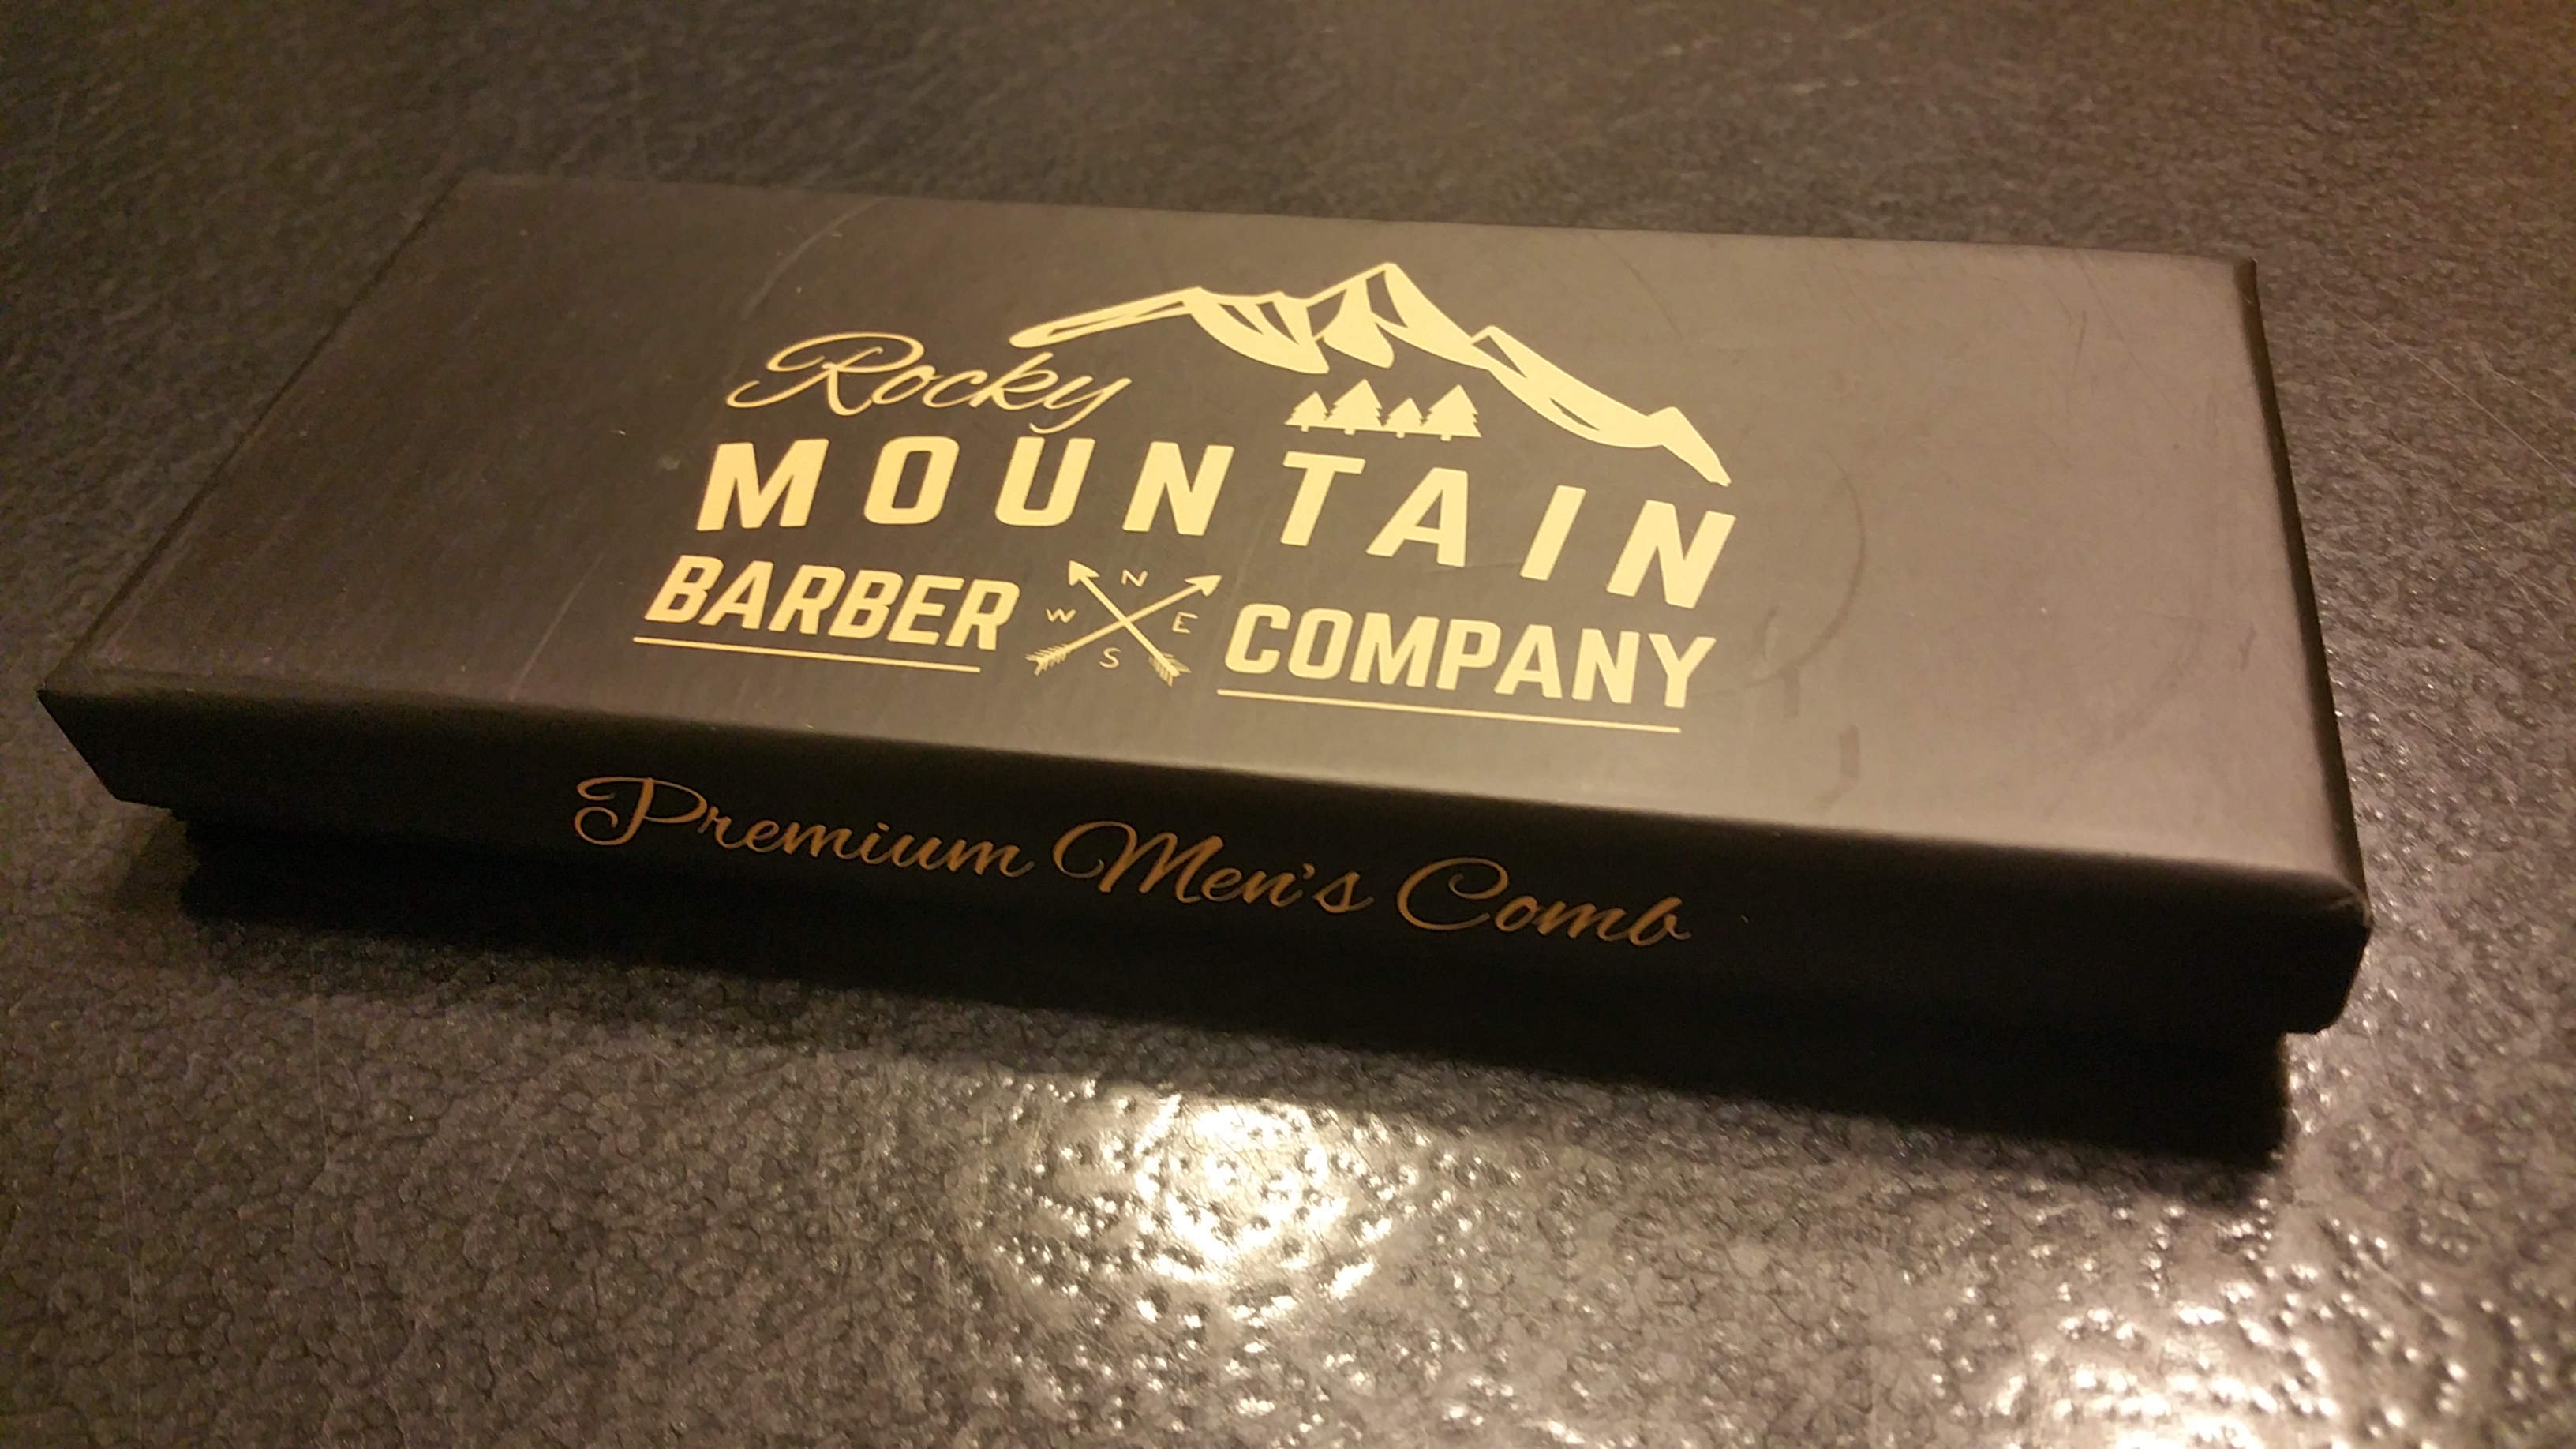 Stylish and convenient comb by the Rocky Mountain Barber Company